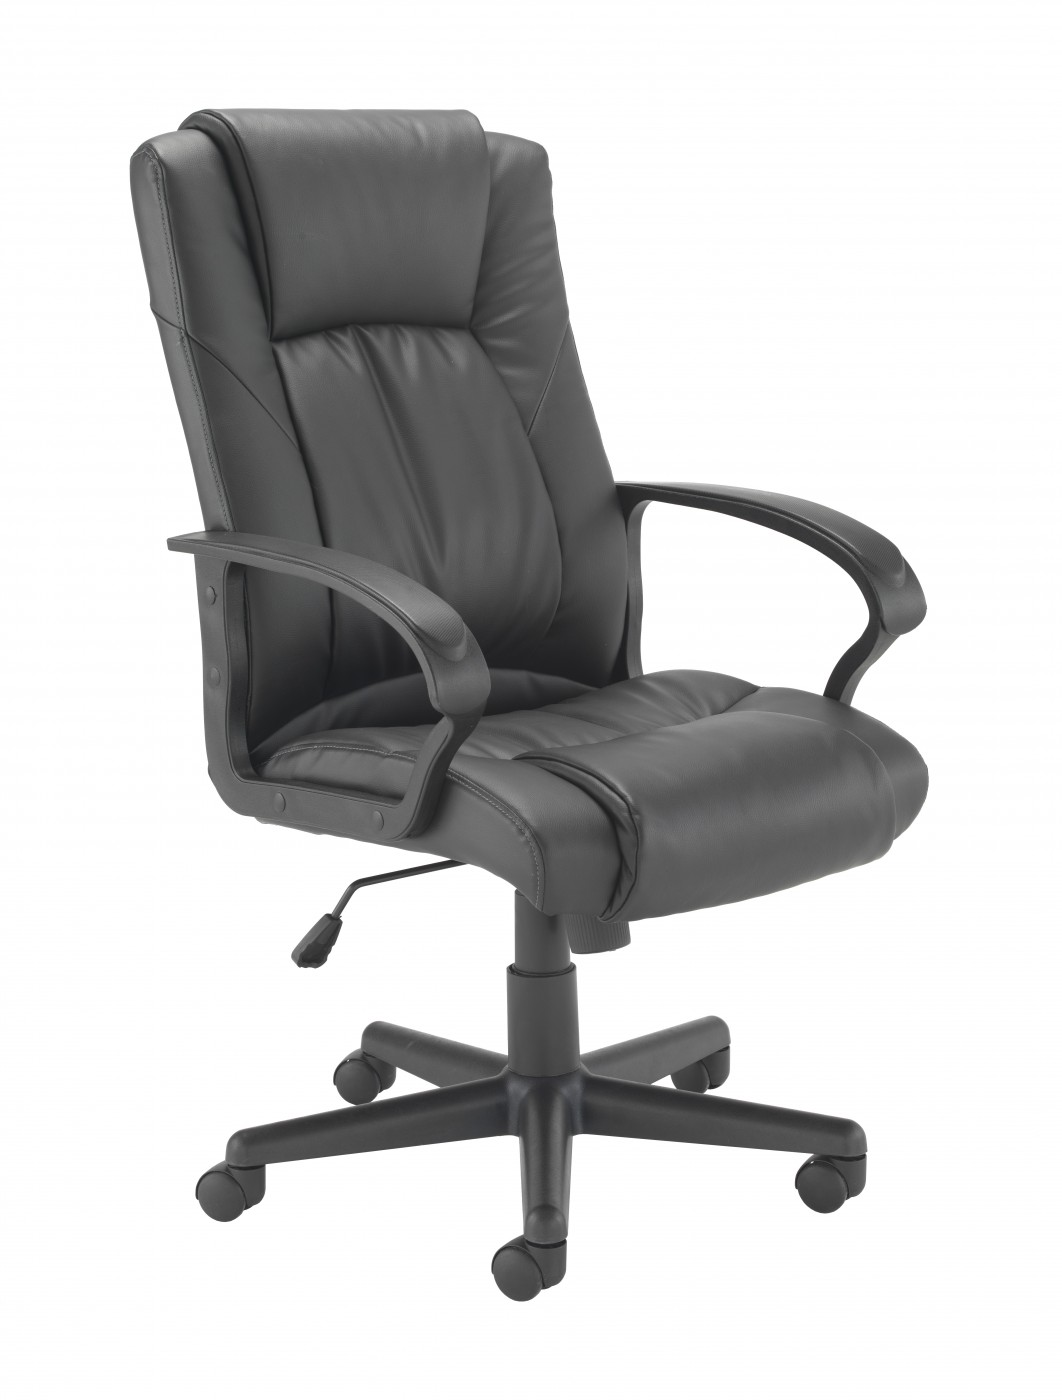 Black Leather Executive Orthopaedic Chair With Headrest And Heavy Duty Cast